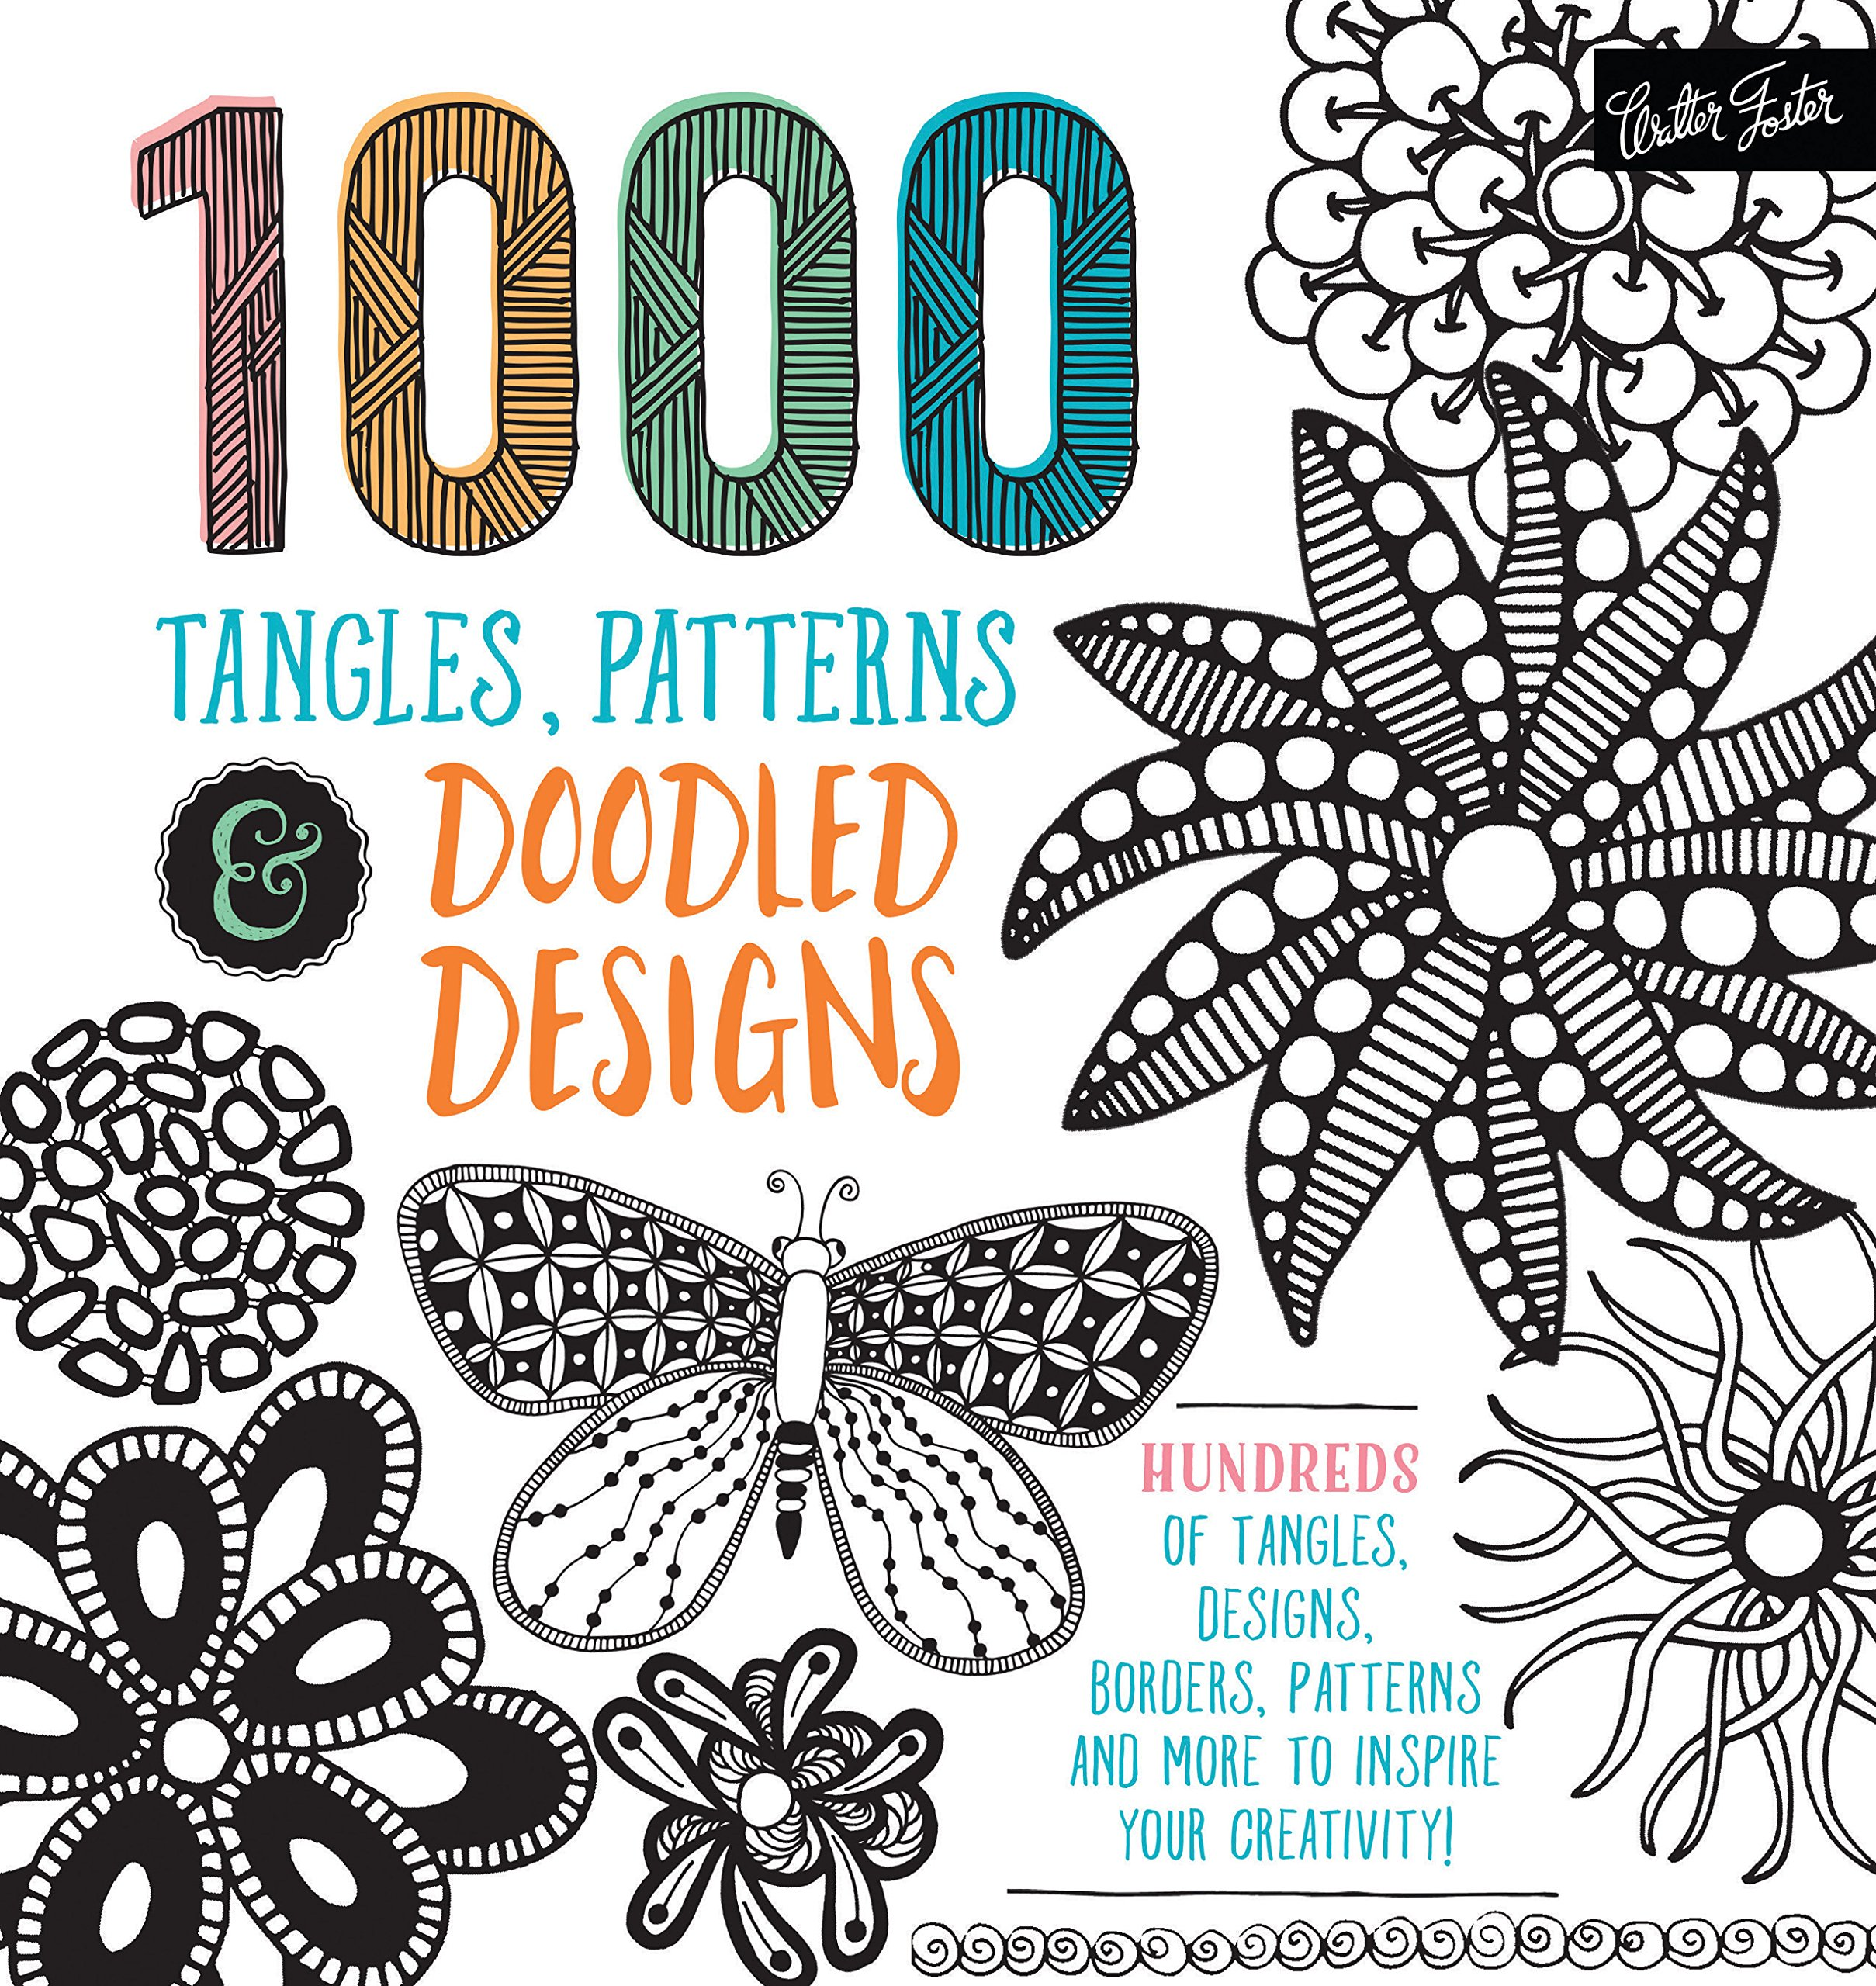 1,000 Tangles, Patterns & Doodled Designs: Hundreds of tangles, designs, borders, patterns and more to inspire your creativity! pdf epub